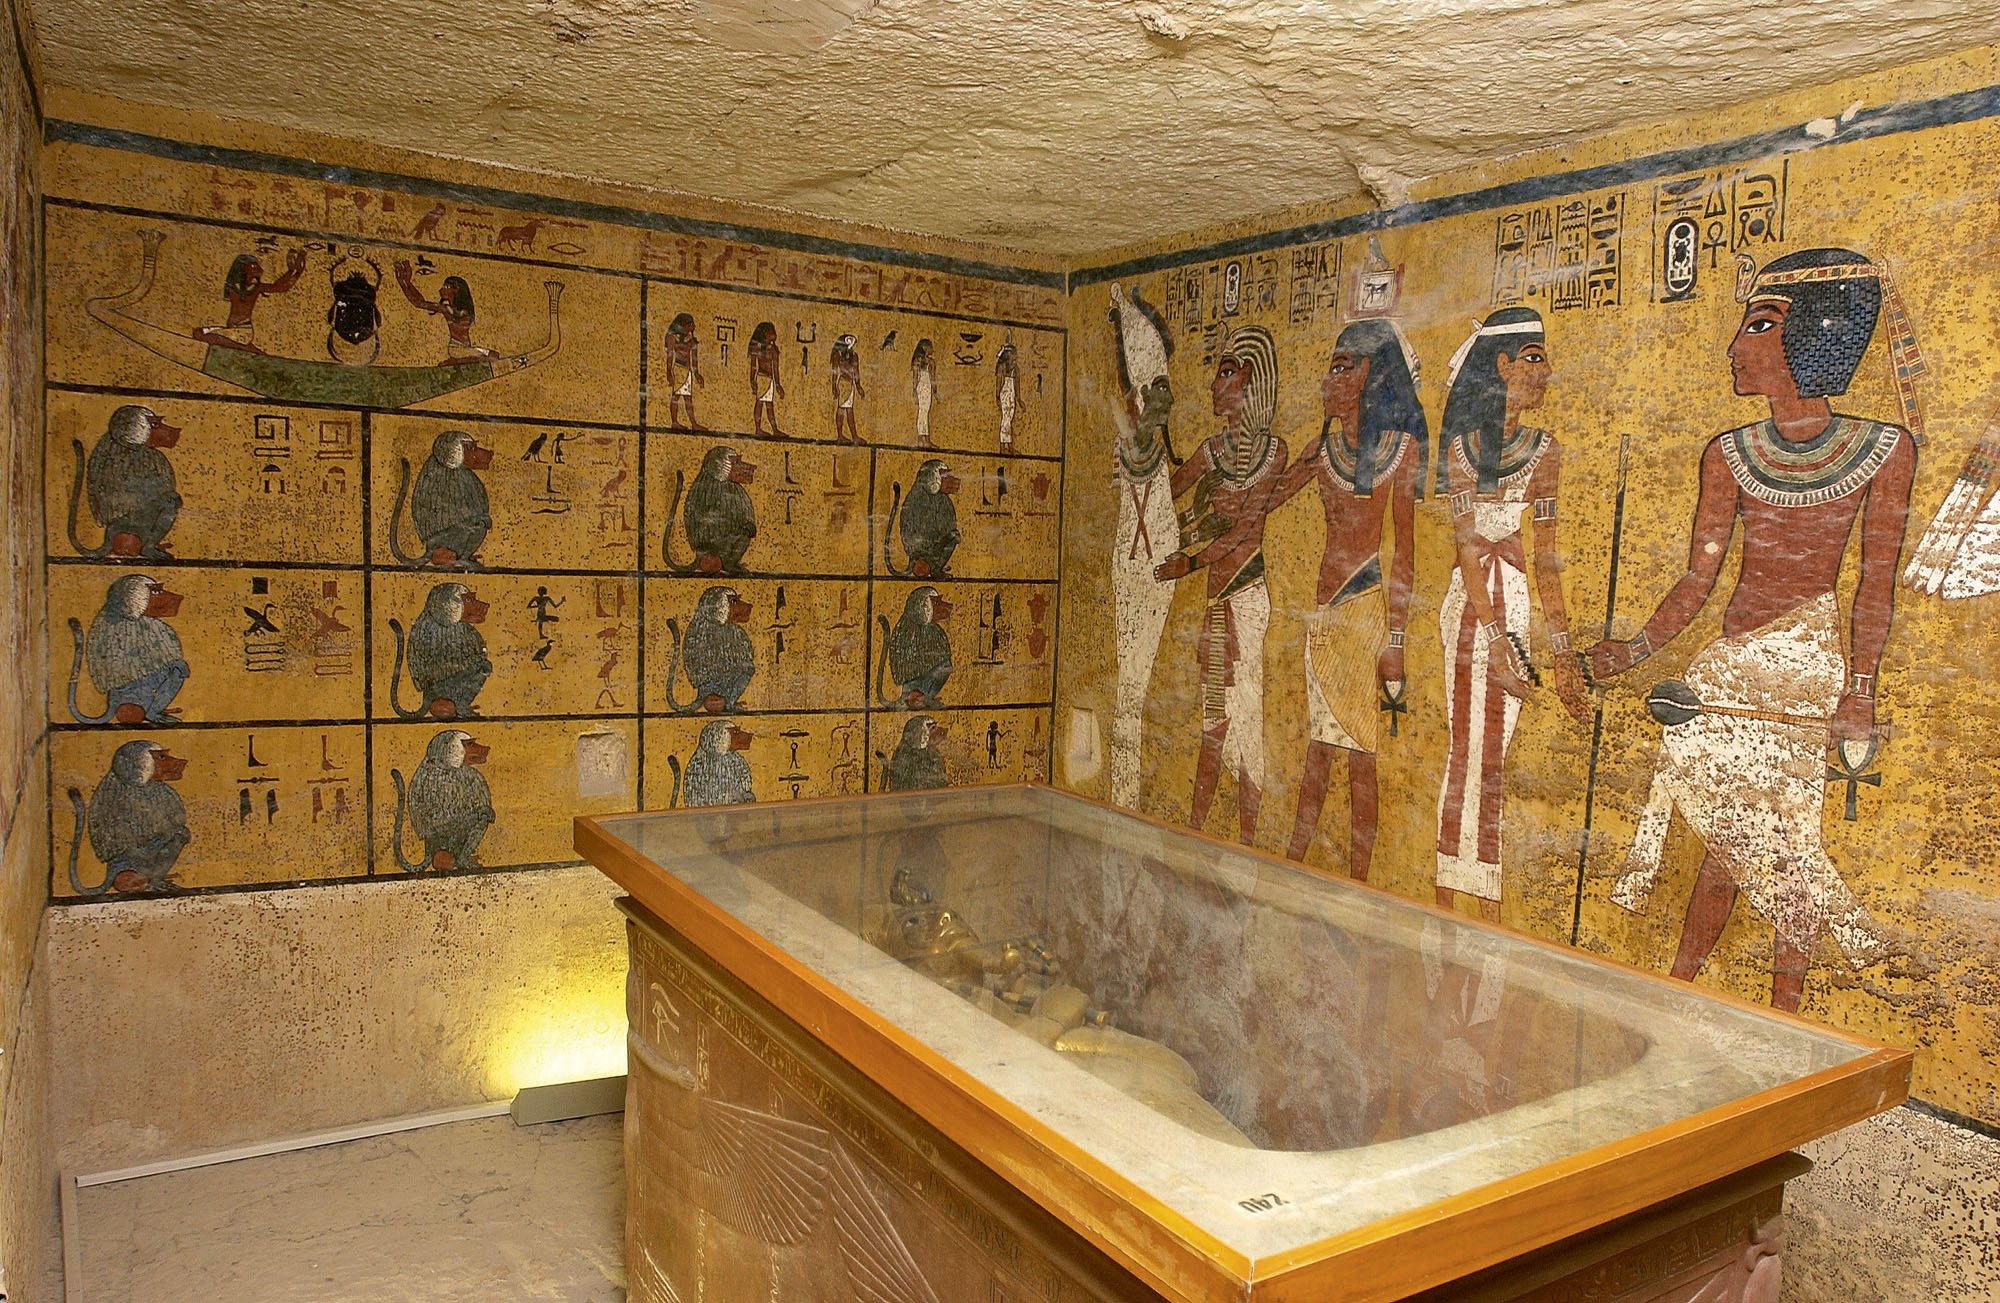 The burial chamber of King Tutankhamun. Dr Reeves claims the wall on the right is a false partition wall, concealing the intact burial of Queen Nefertiti.